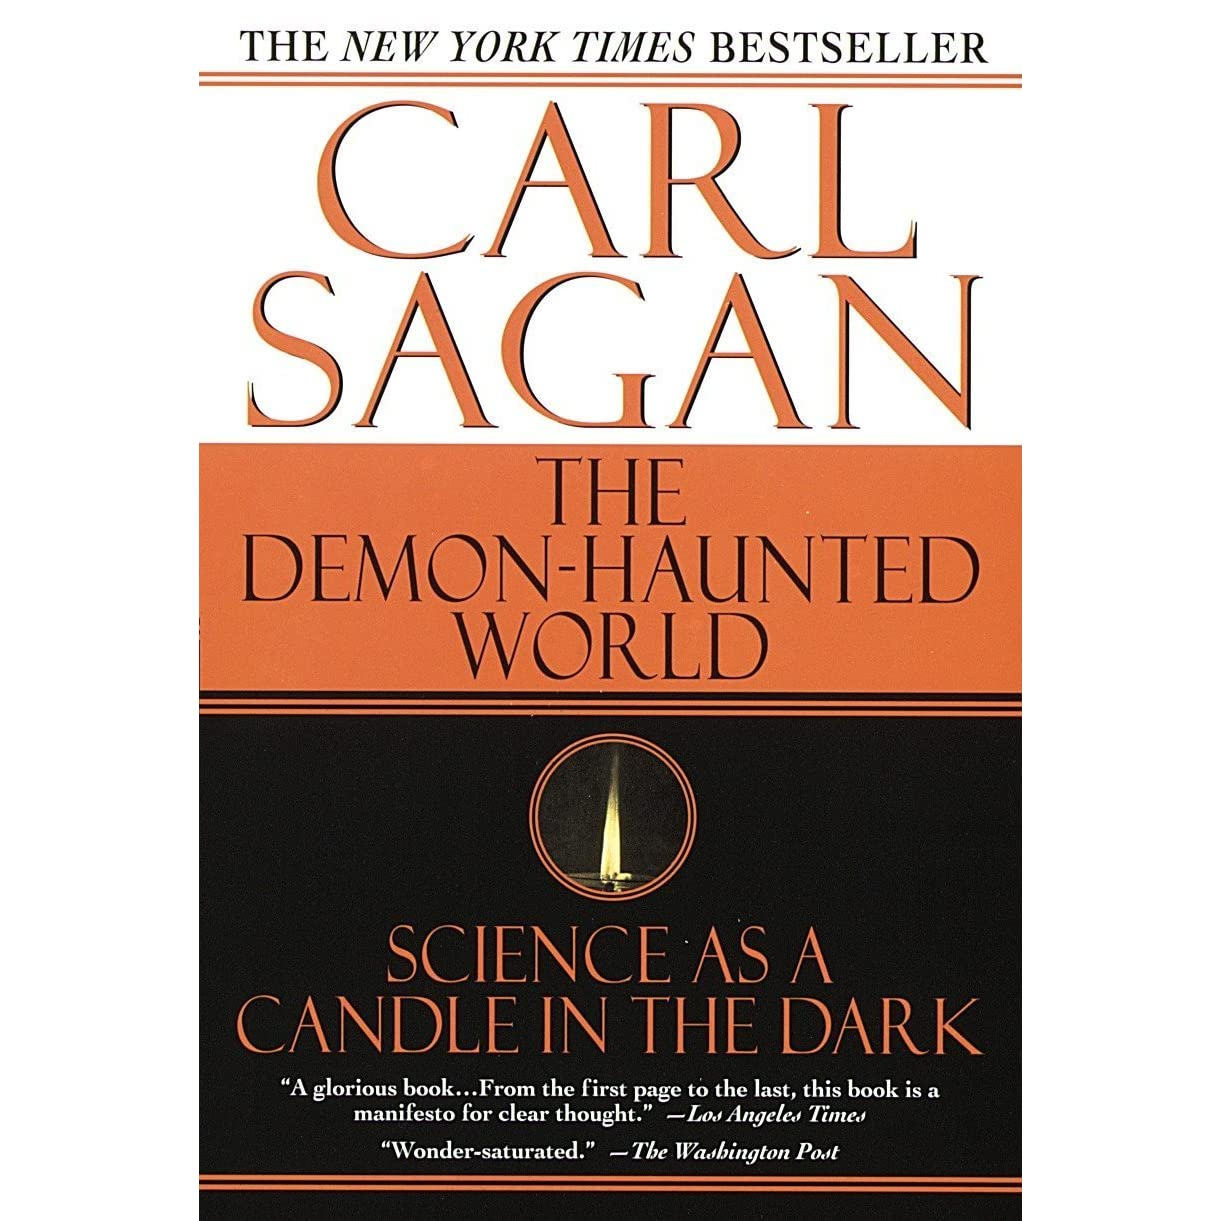 The Demon-Haunted World: Science as a Candle in the Dark by